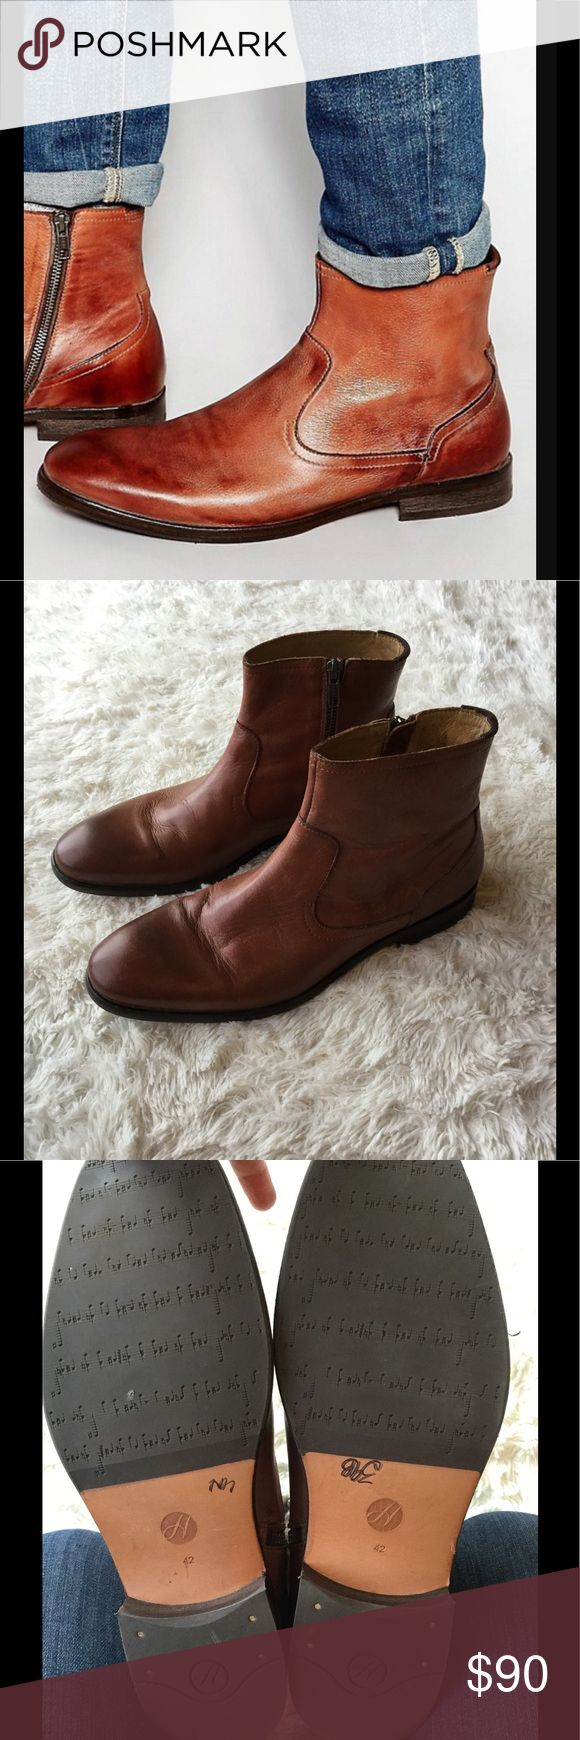 H London Hudson Plant Boots Awesome Boots! Great Condition! These retail for over $200....Great Craftsmanship with premium leather........European Size 42 H London Hudson  Shoes Boots